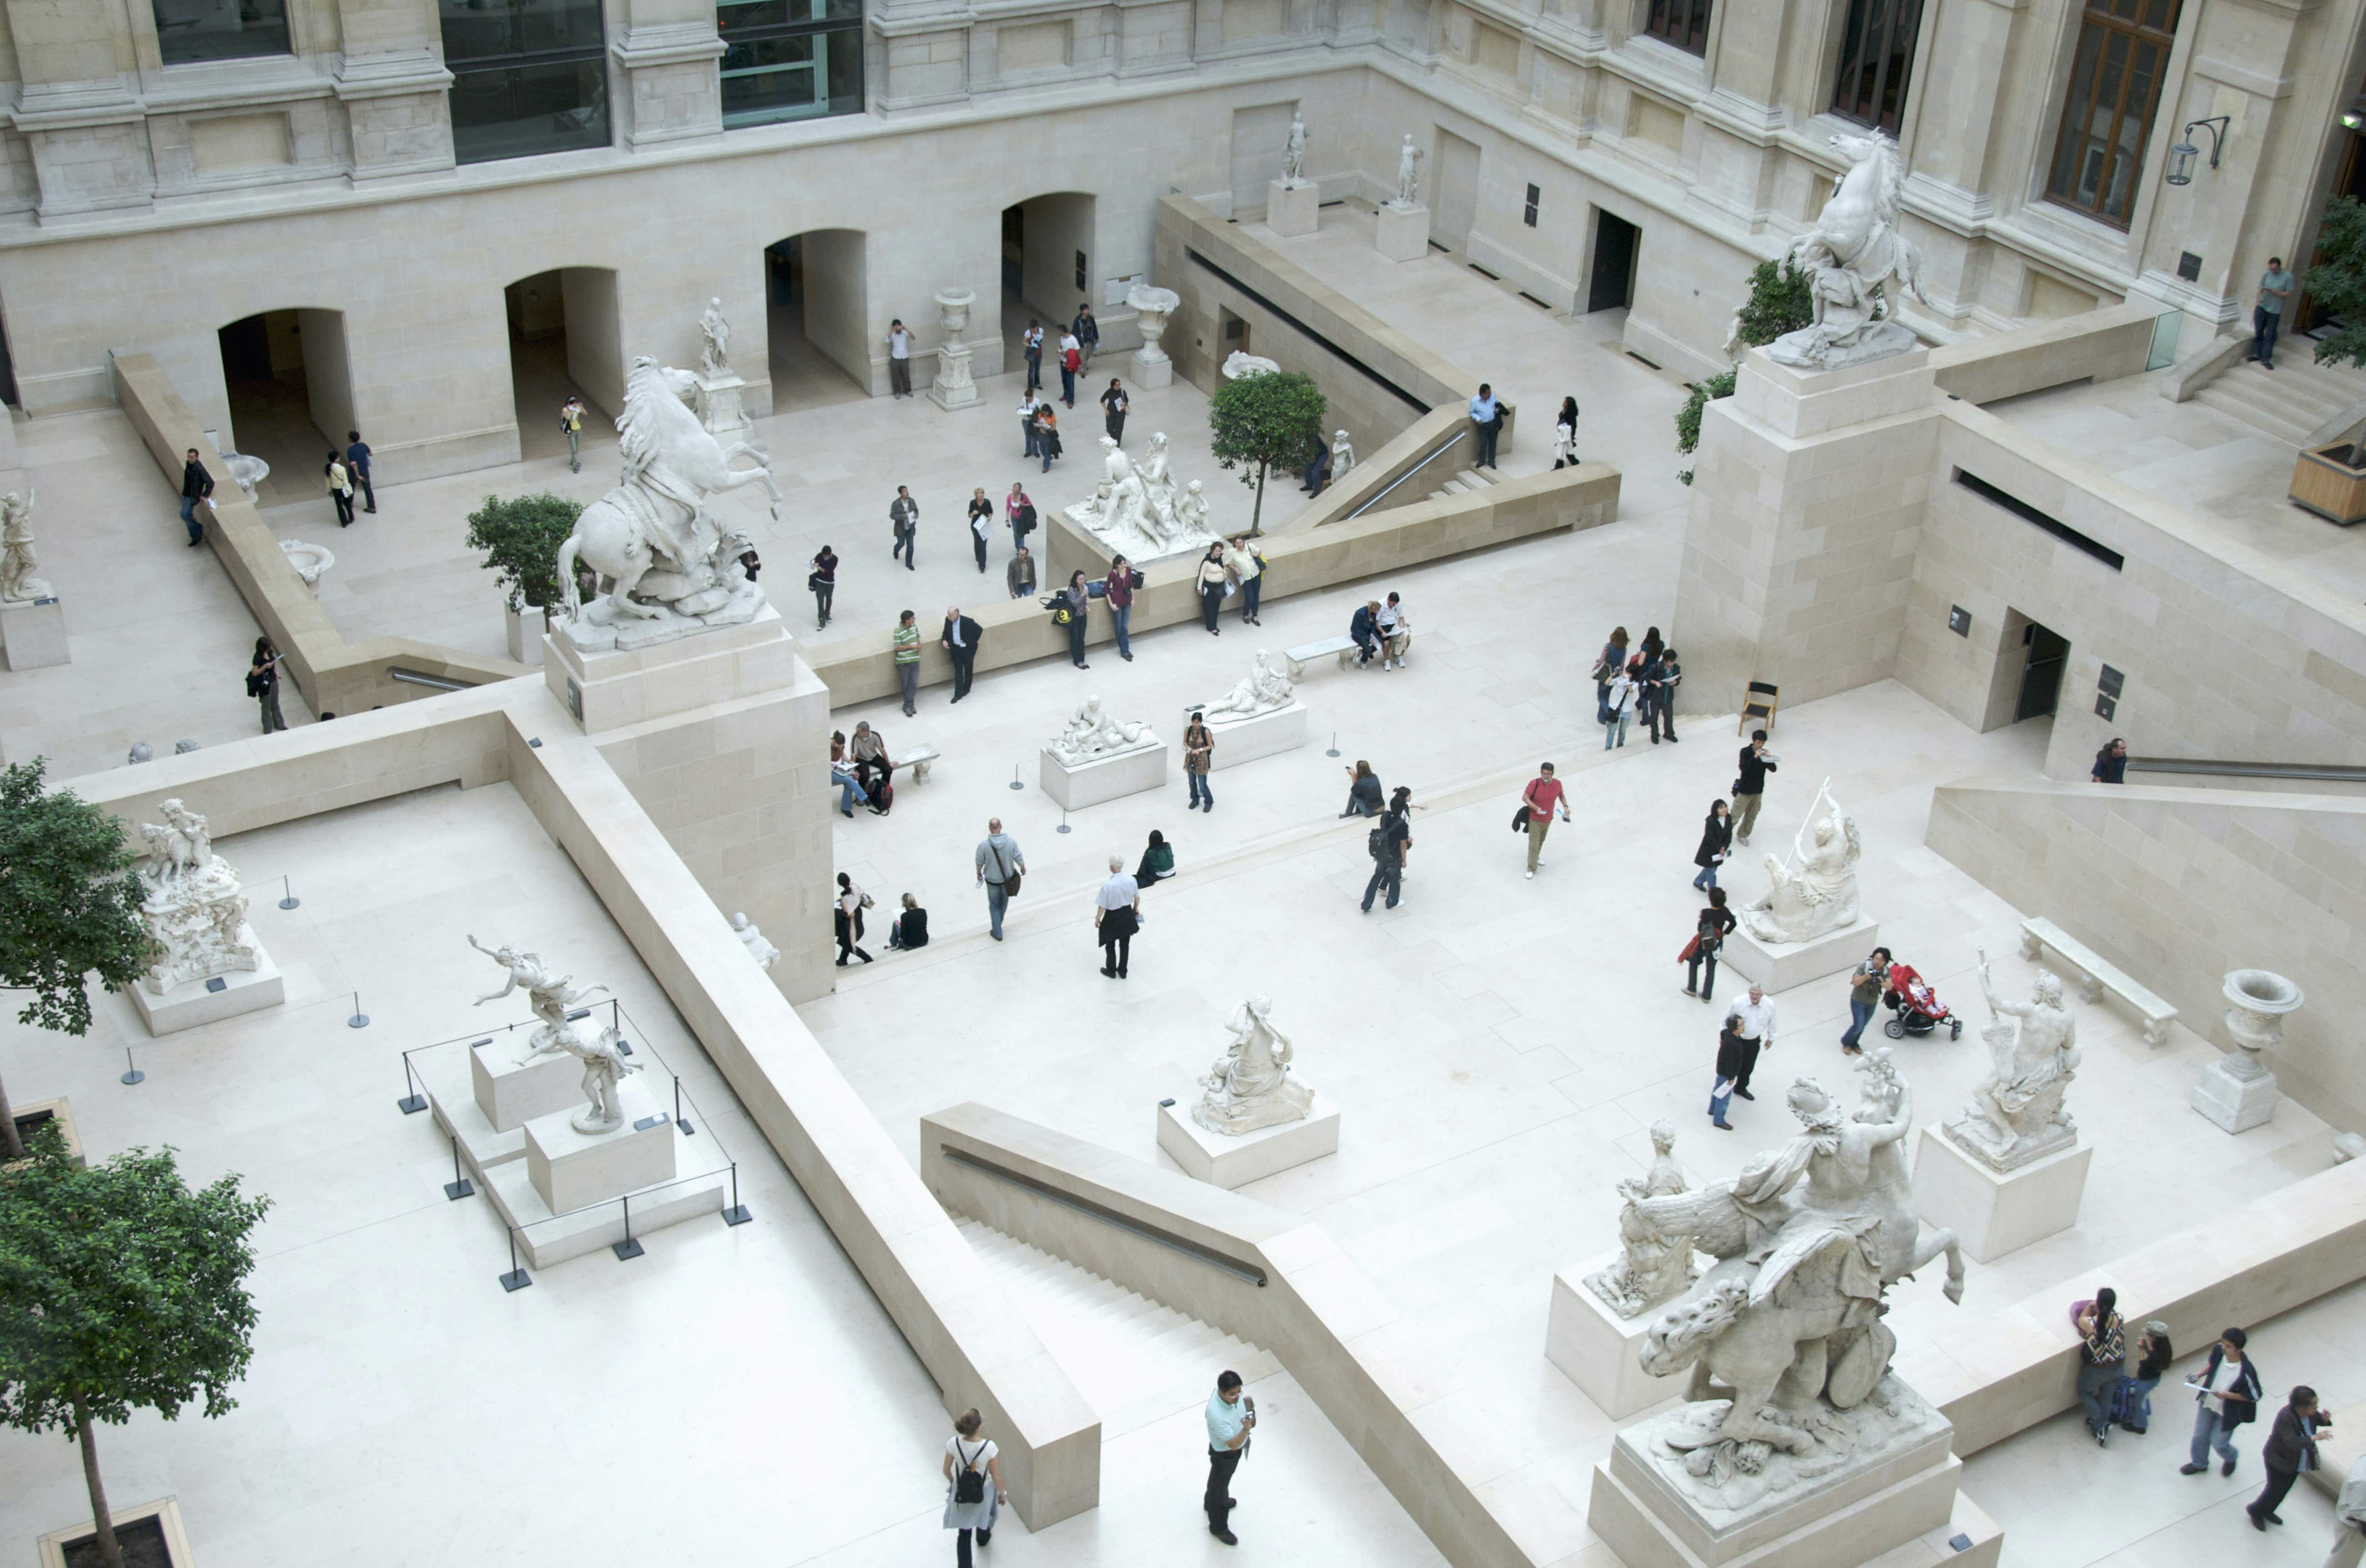 The Cour Marly is filled with 17th- and 18th-century French sculptures © Bernard Jaubert / Getty Images